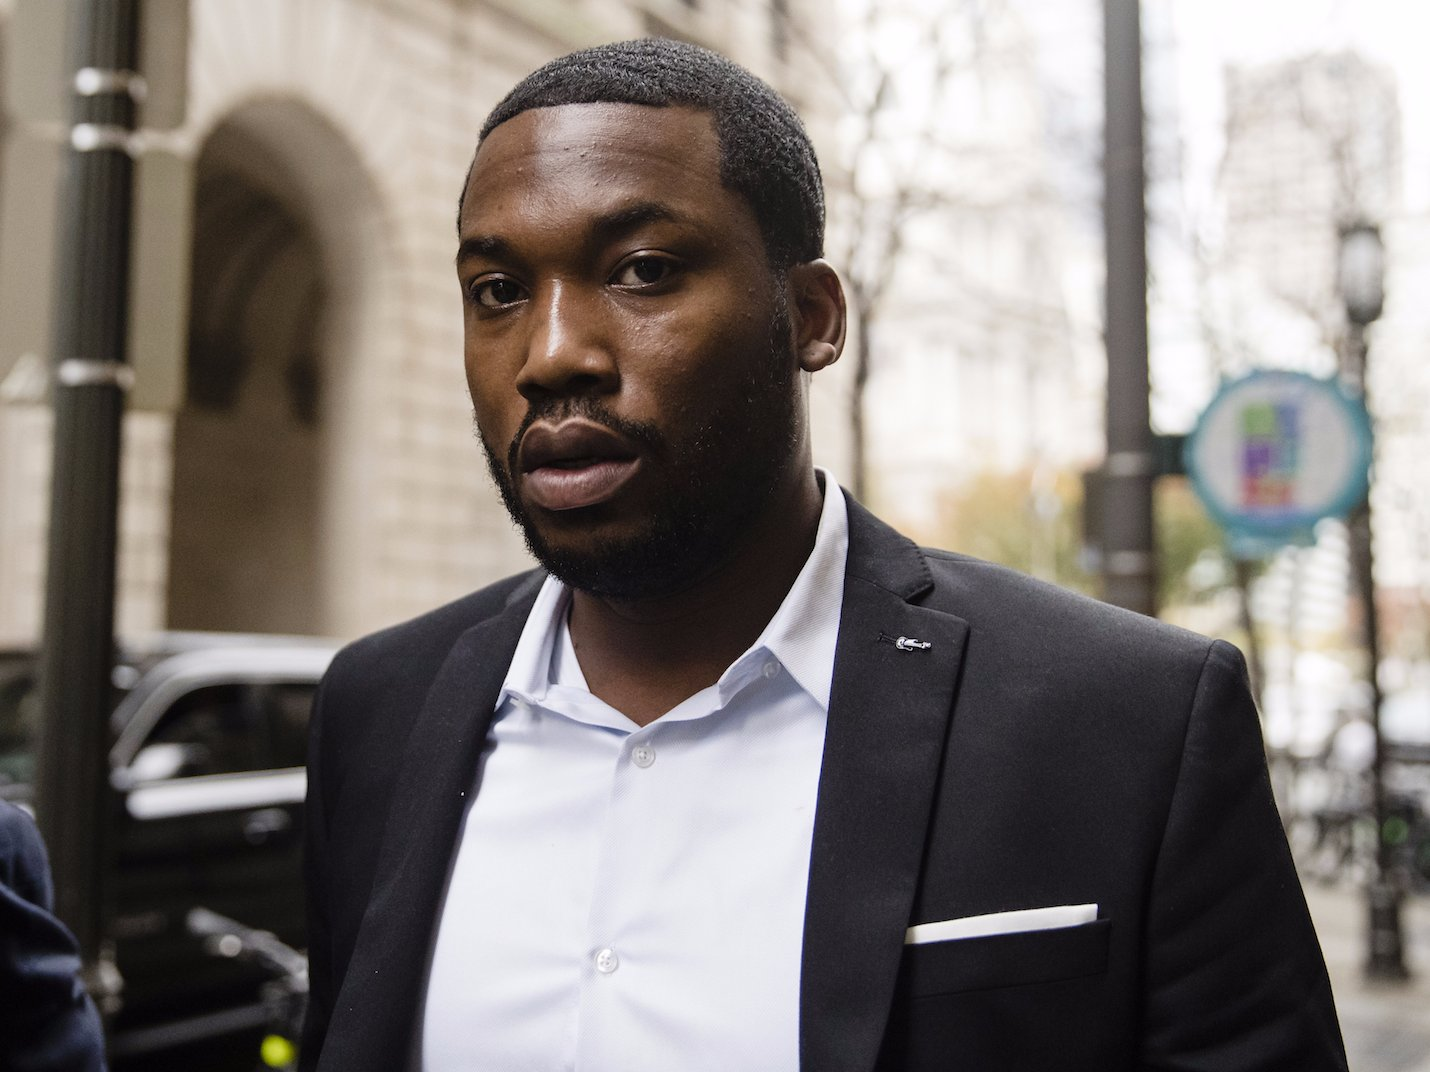 Judge orders jail time for rapper Meek Mill